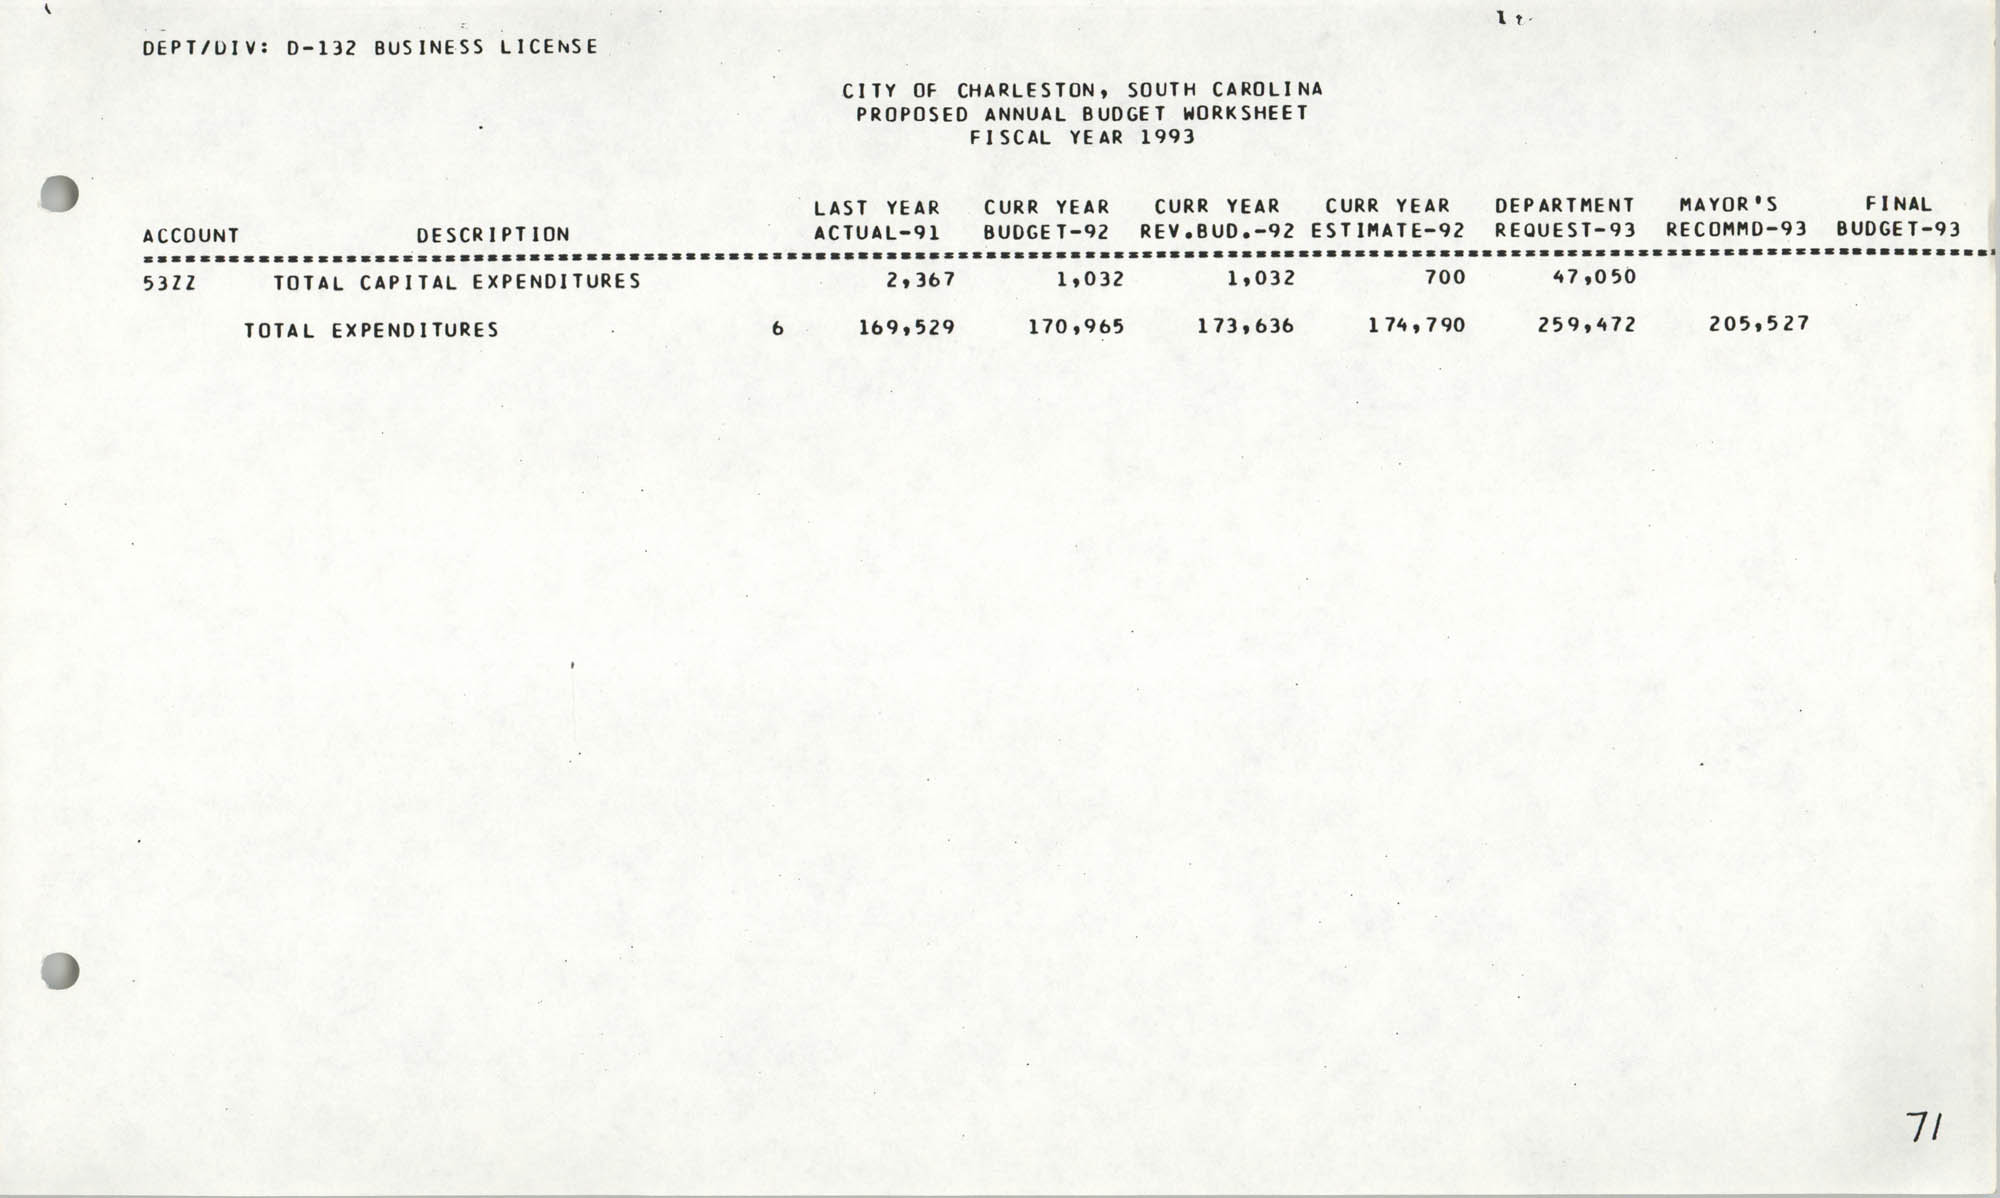 The City Council of Charleston, South Carolina, 1993 Budget, Page 71